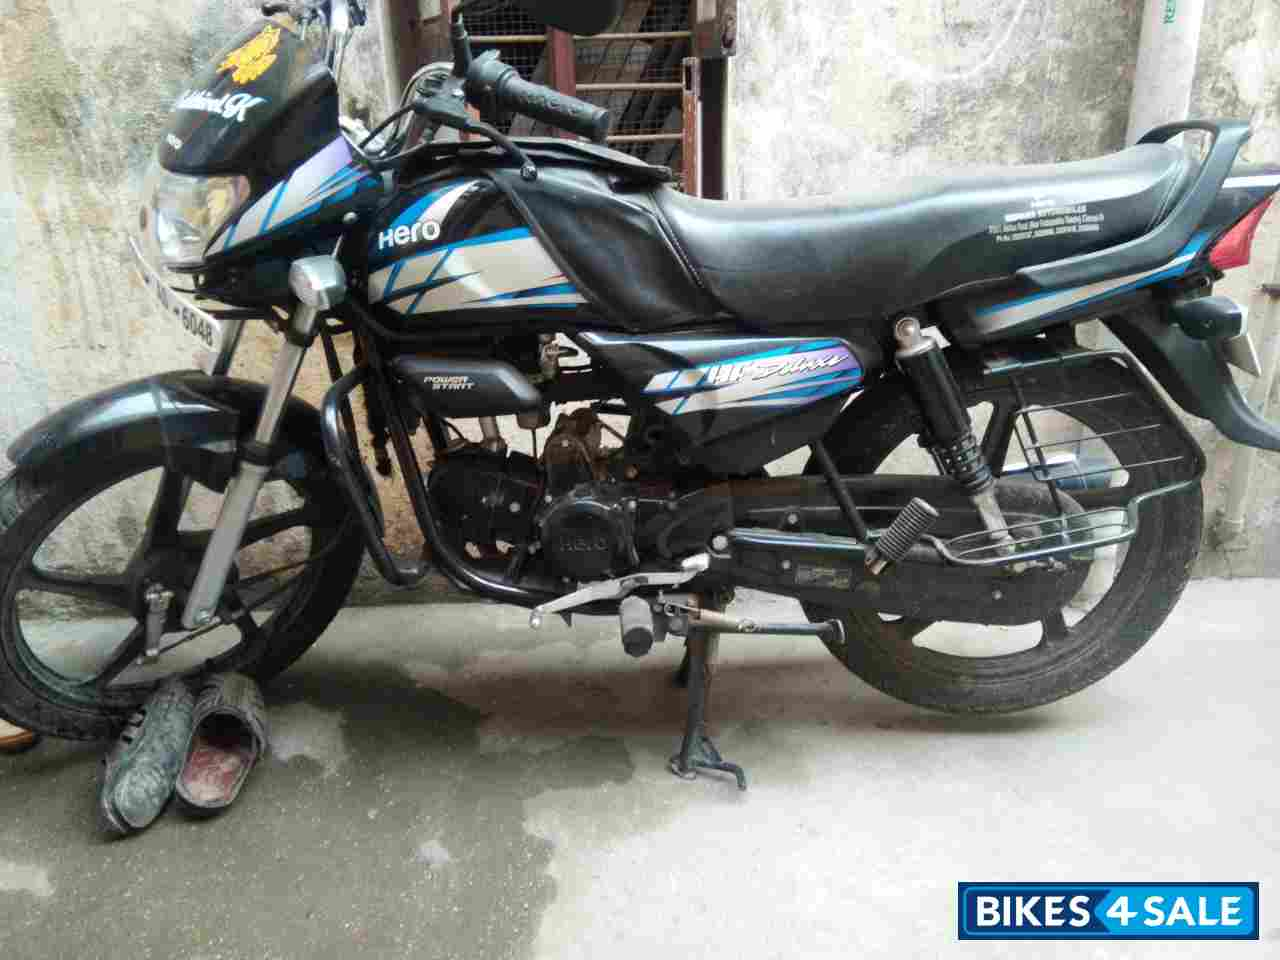 Used 2017 Model Hero Hf Deluxe For Sale In Tiruvallur Id 208386 Bikes4sale